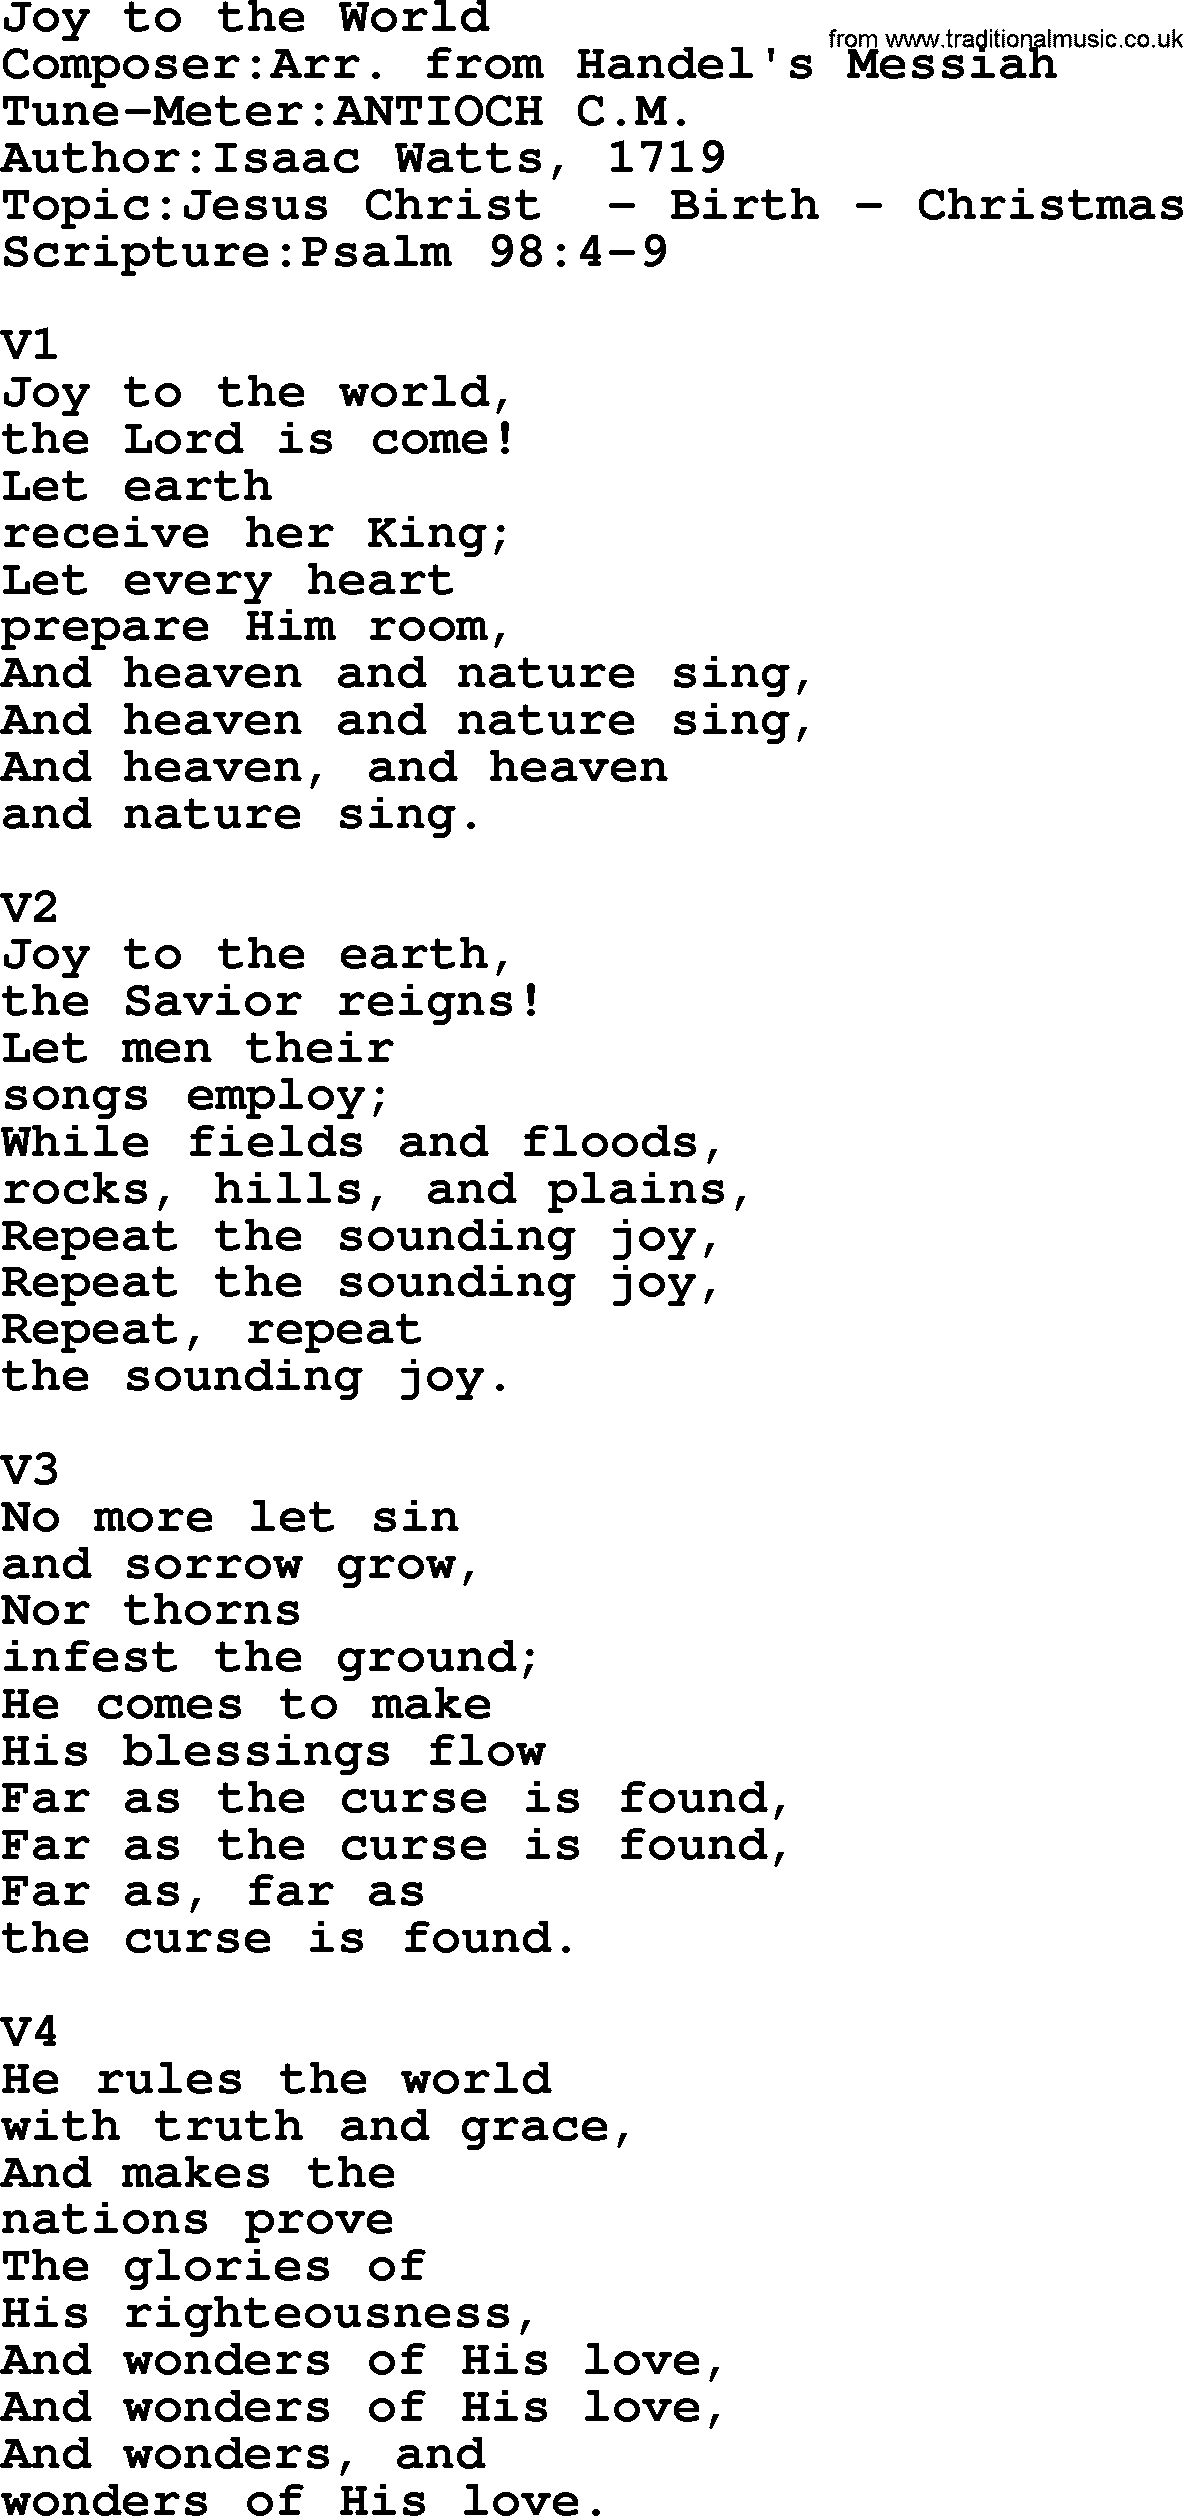 Adventist Hymn: Joy To The World - Christian Song lyrics, with PDF